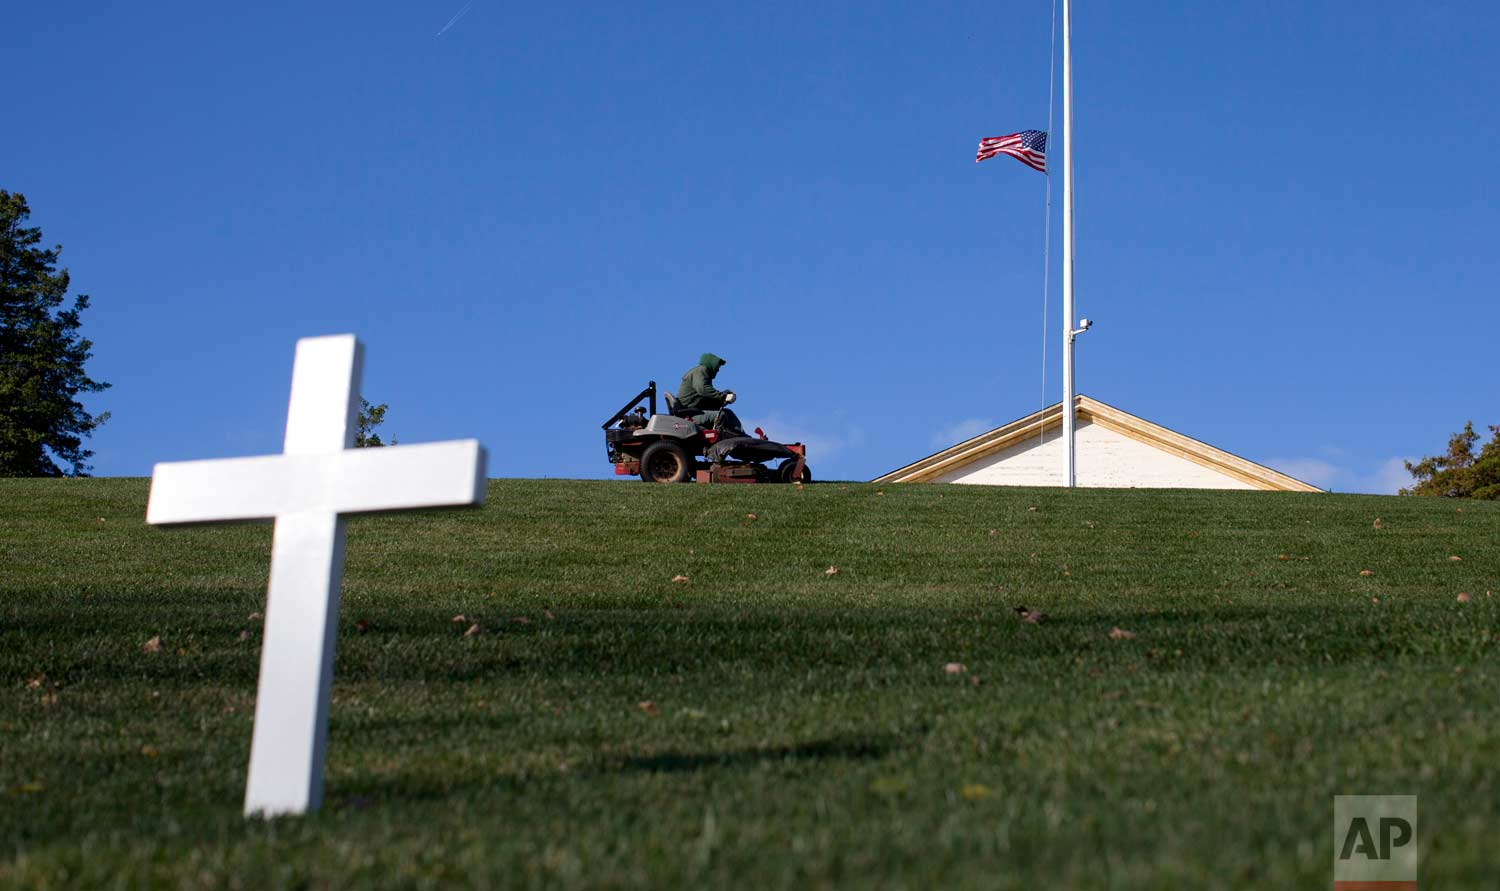 This Nov. 19, 2013 photo shows a cross marking the grave of Robert F. Kennedy as a groundskeeper mows the grass near the Arlington House, right, at Arlington National Cemetery in Arlington, Va. On June 5, 1968, Associated Press Hollywood reporter Bob Thomas was on a one-night political assignment covering Kennedy's victory celebration in the California presidential primary at the Ambassador Hotel in Los Angeles when mayhem unfolded before his eyes. (AP Photo/Carolyn Kaster)